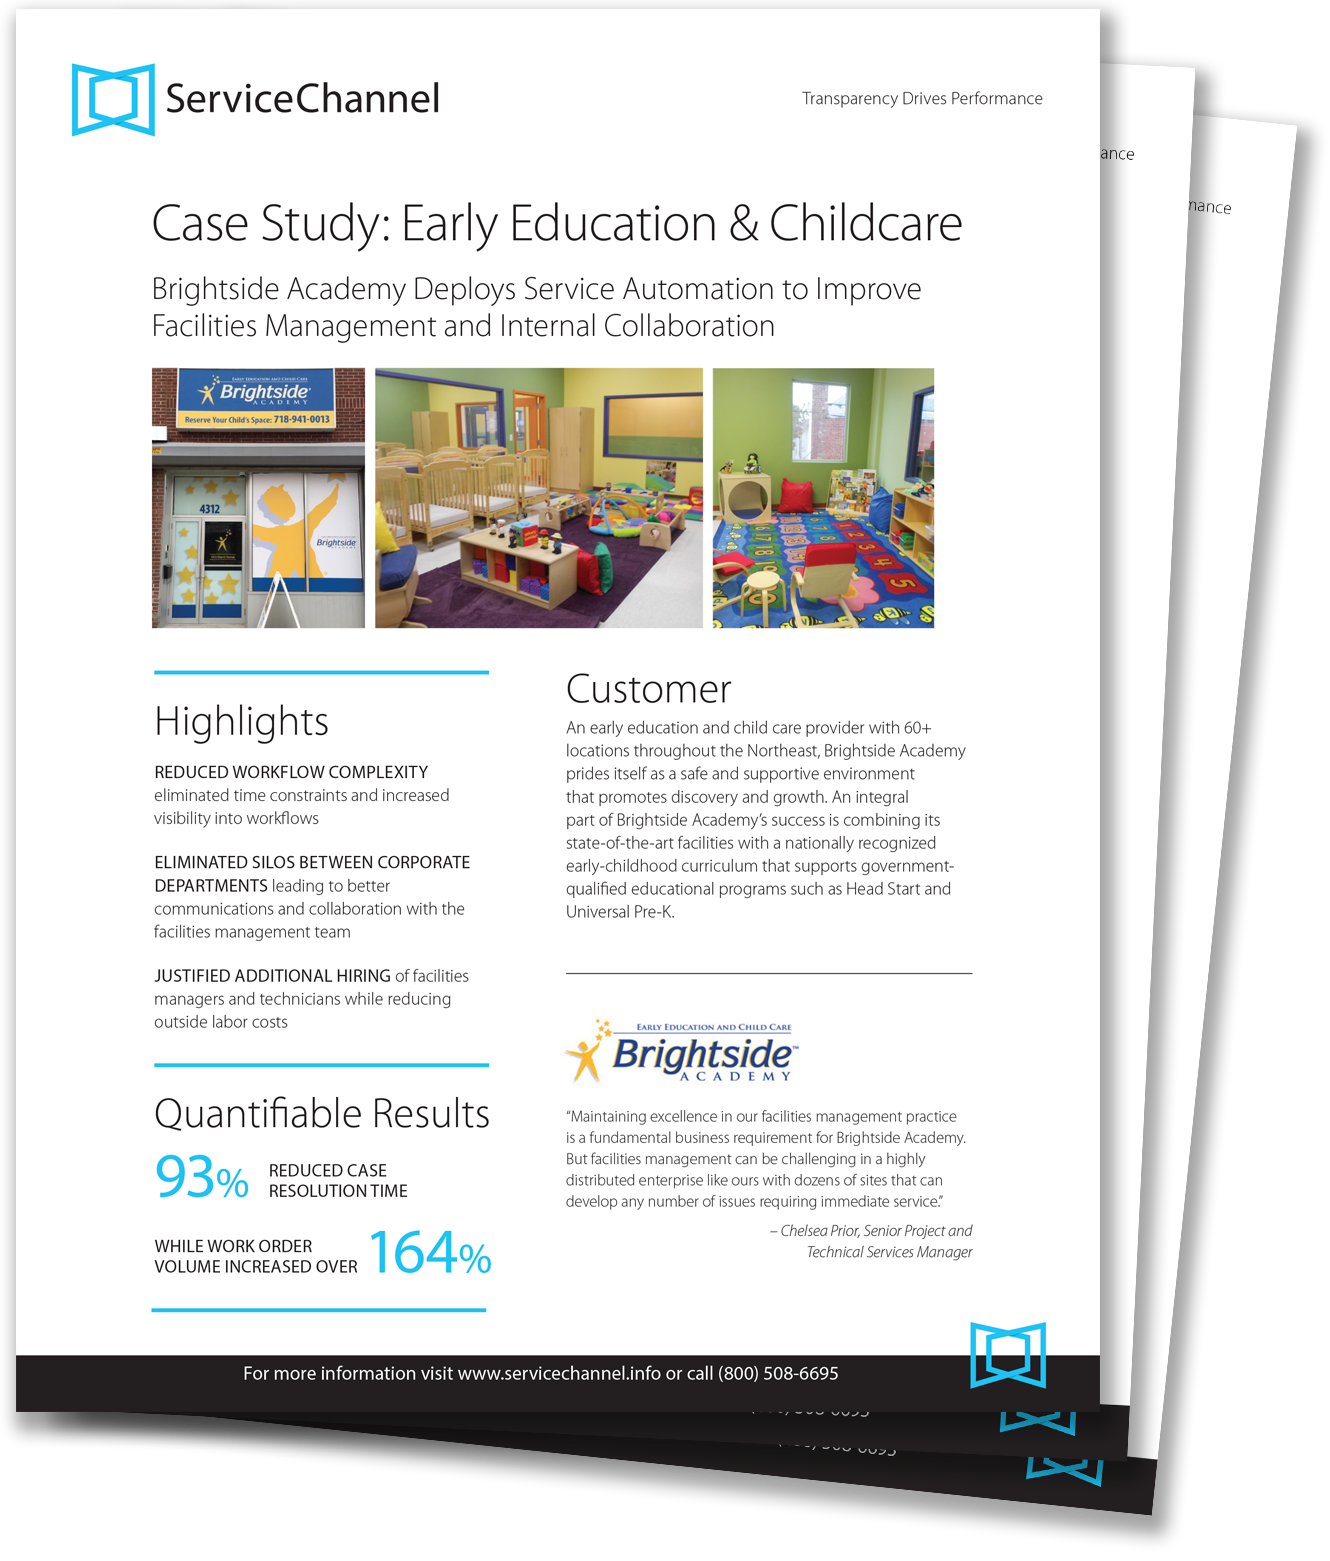 Education__Childcare_Facilities_Management_Case_Study_by_ServiceChannel_CTA.png